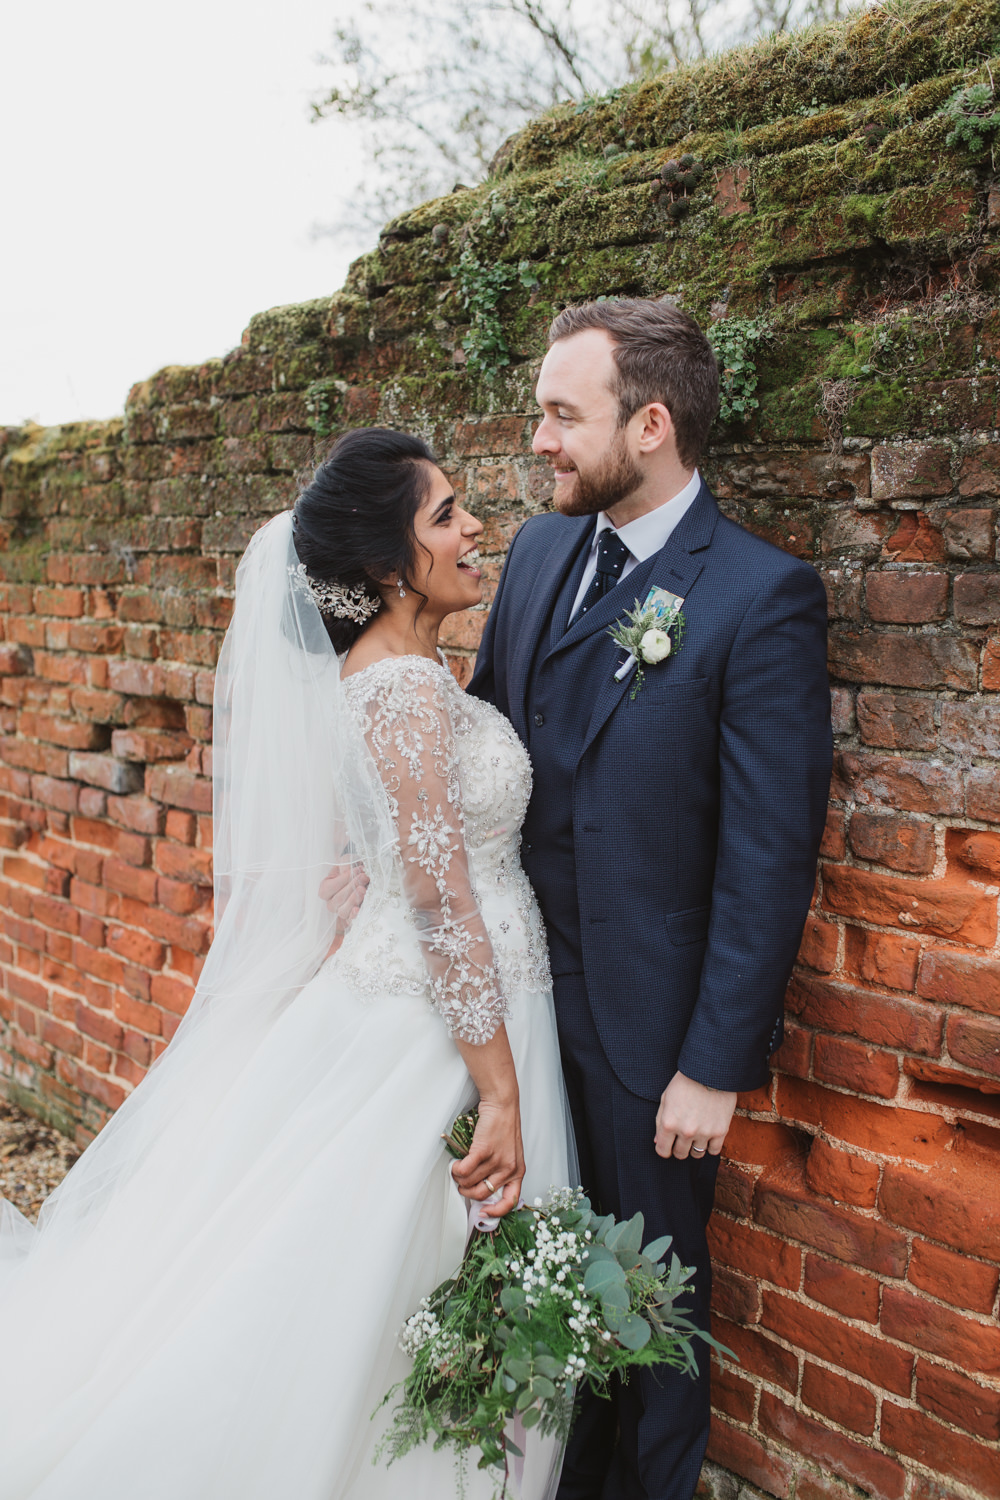 Lace Long Sleeve Dress Embellished A Line Veil Hair Piece Jewelled Diamante Navy Three Piece Suit Waistcoat Groom Foliage Gypsophila Bouquet Southwood Hall Wedding Emily Tyler Photography